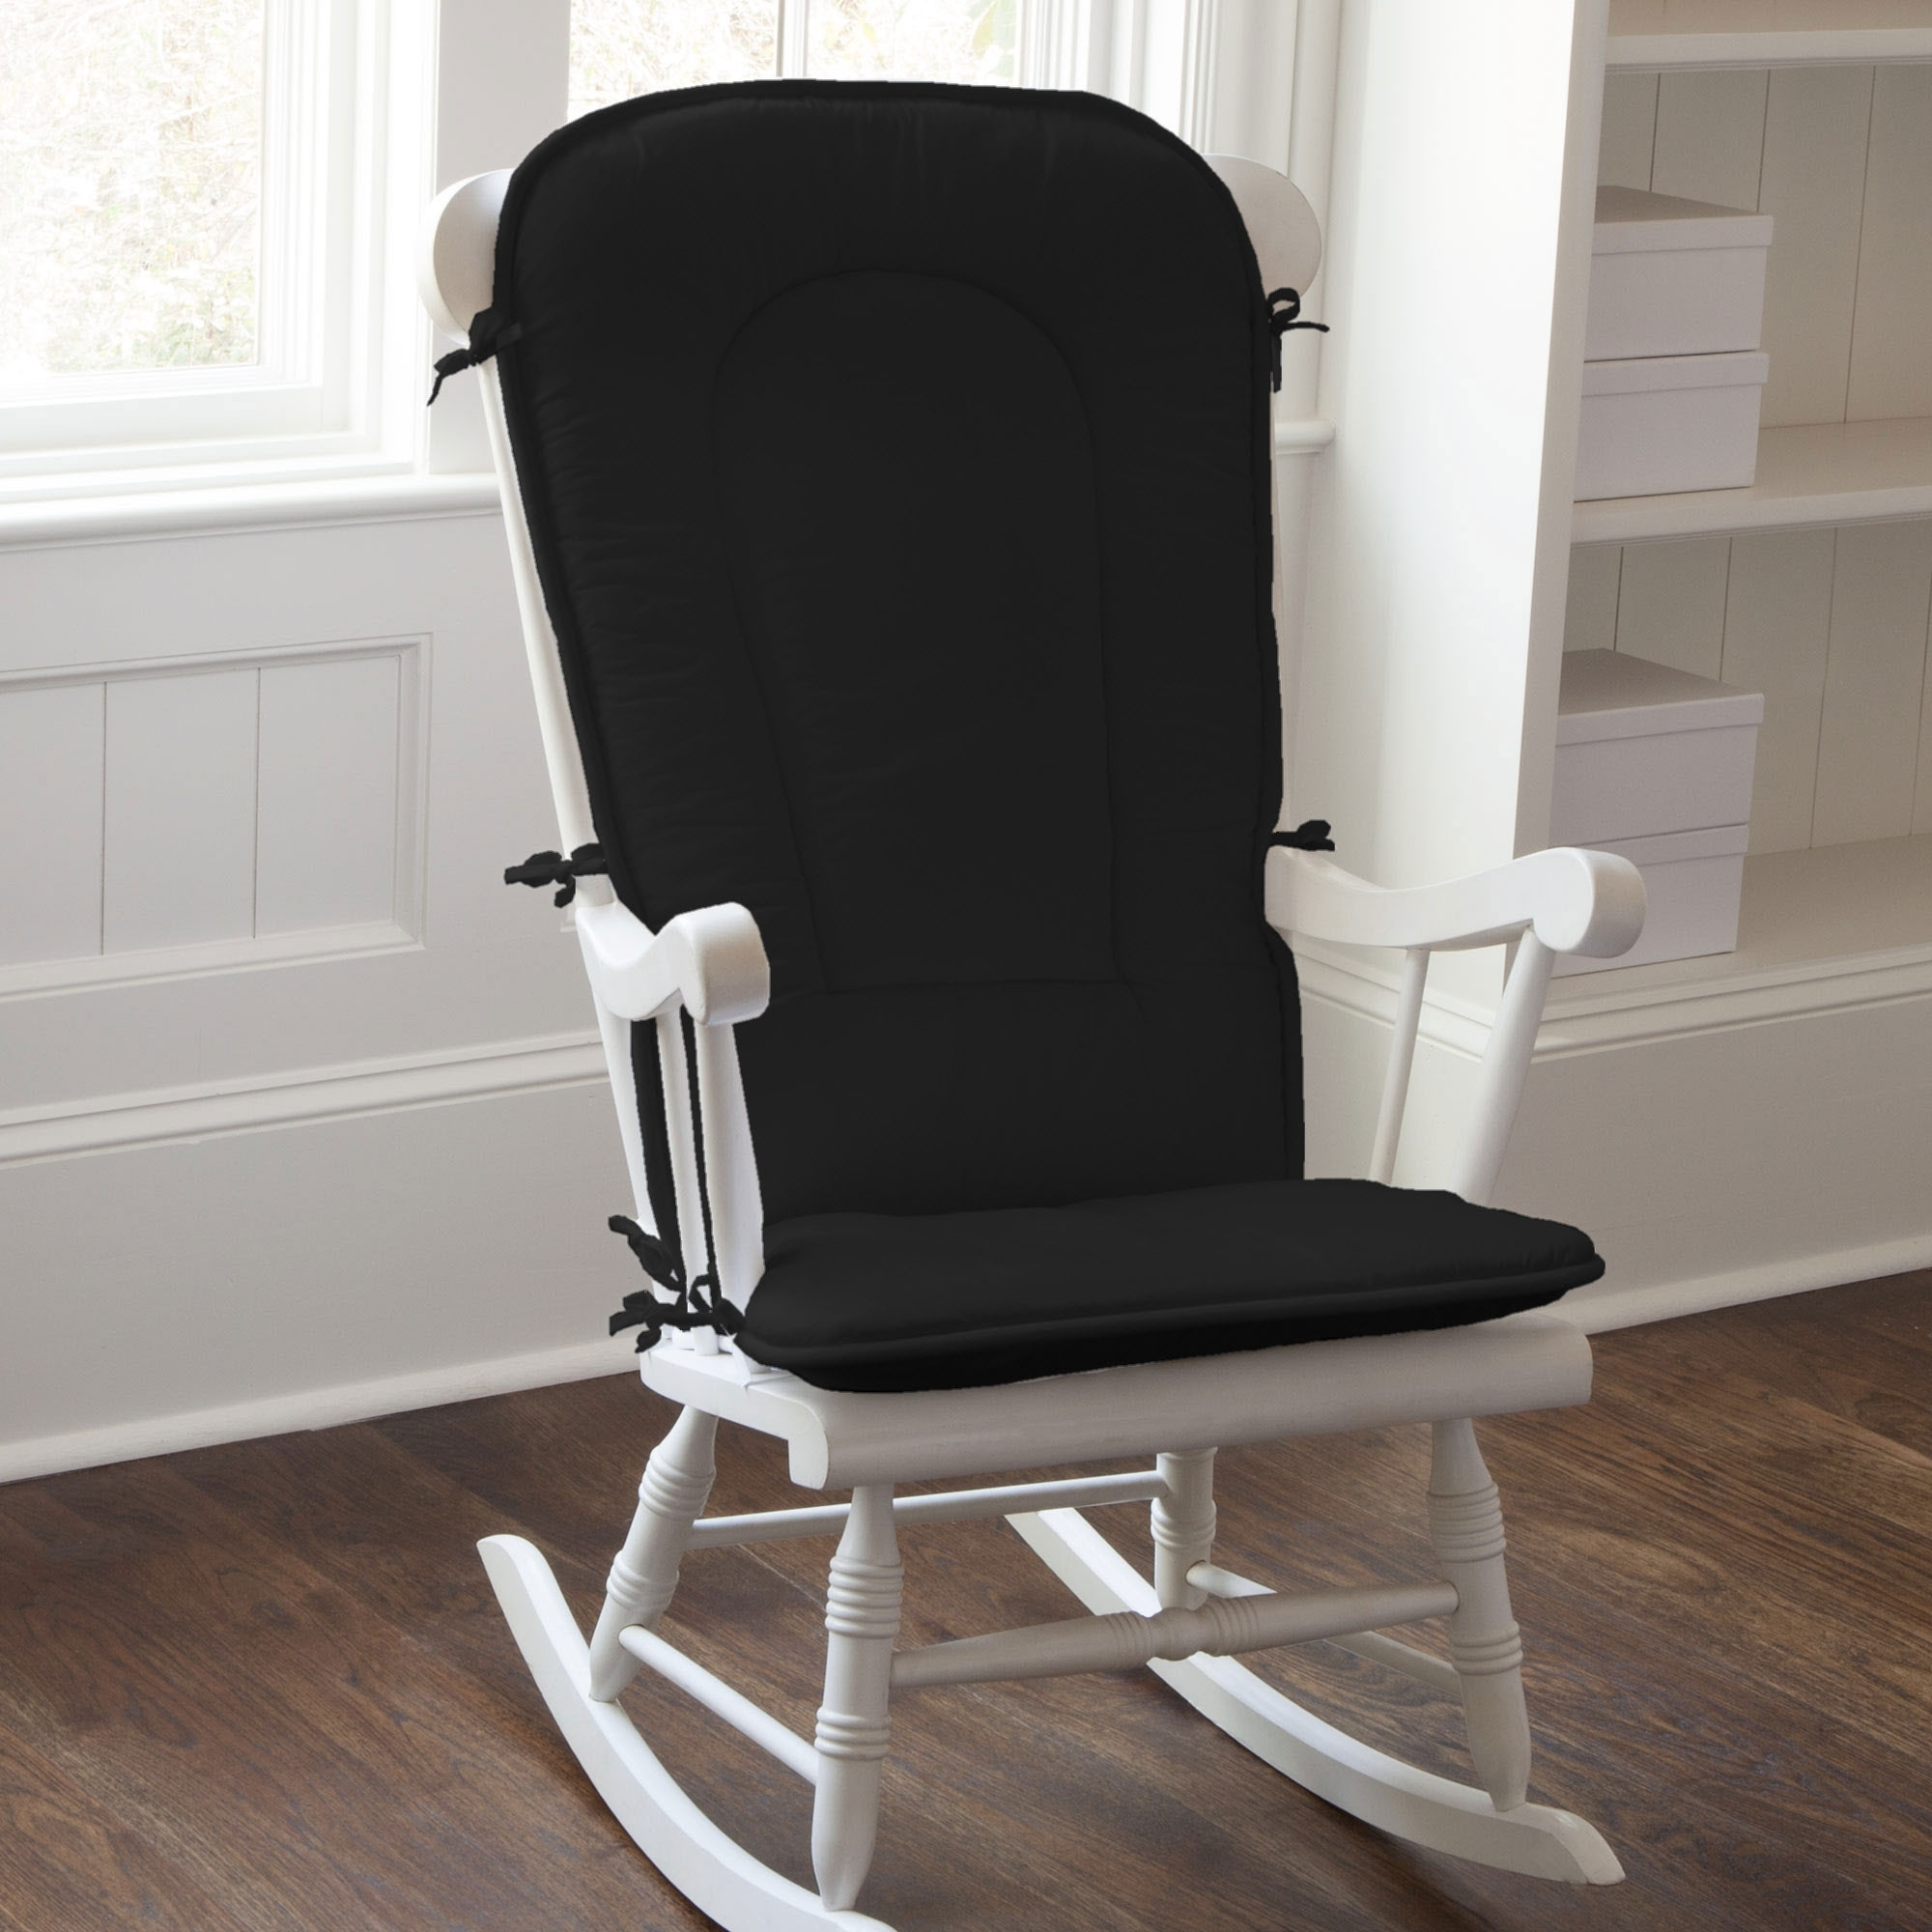 Living Room Furniture : Black Rocking Chair For Nursery Wooden With Regard To Most Recent Rocking Chairs With Cushions (View 4 of 15)